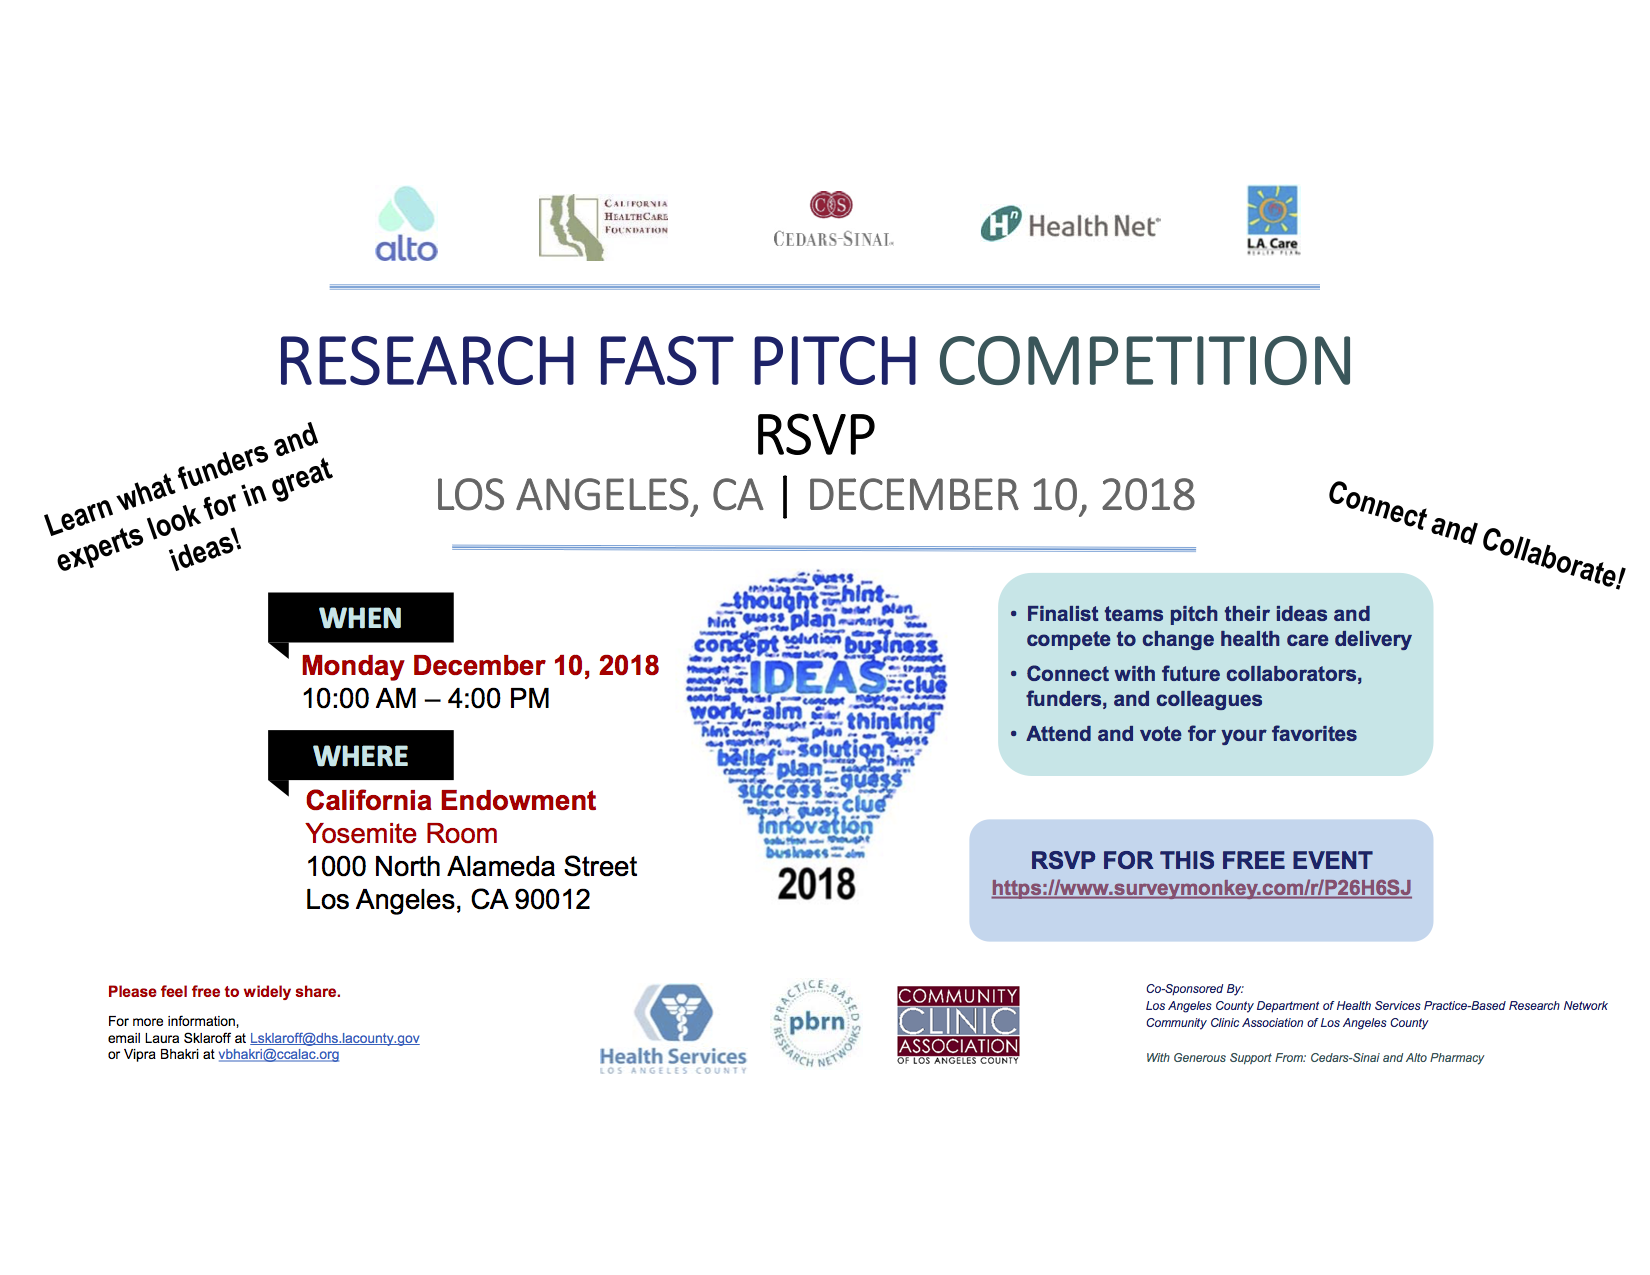 Research-Fast-Pitch-Invite-and-RSVP-copy.png#asset:4515